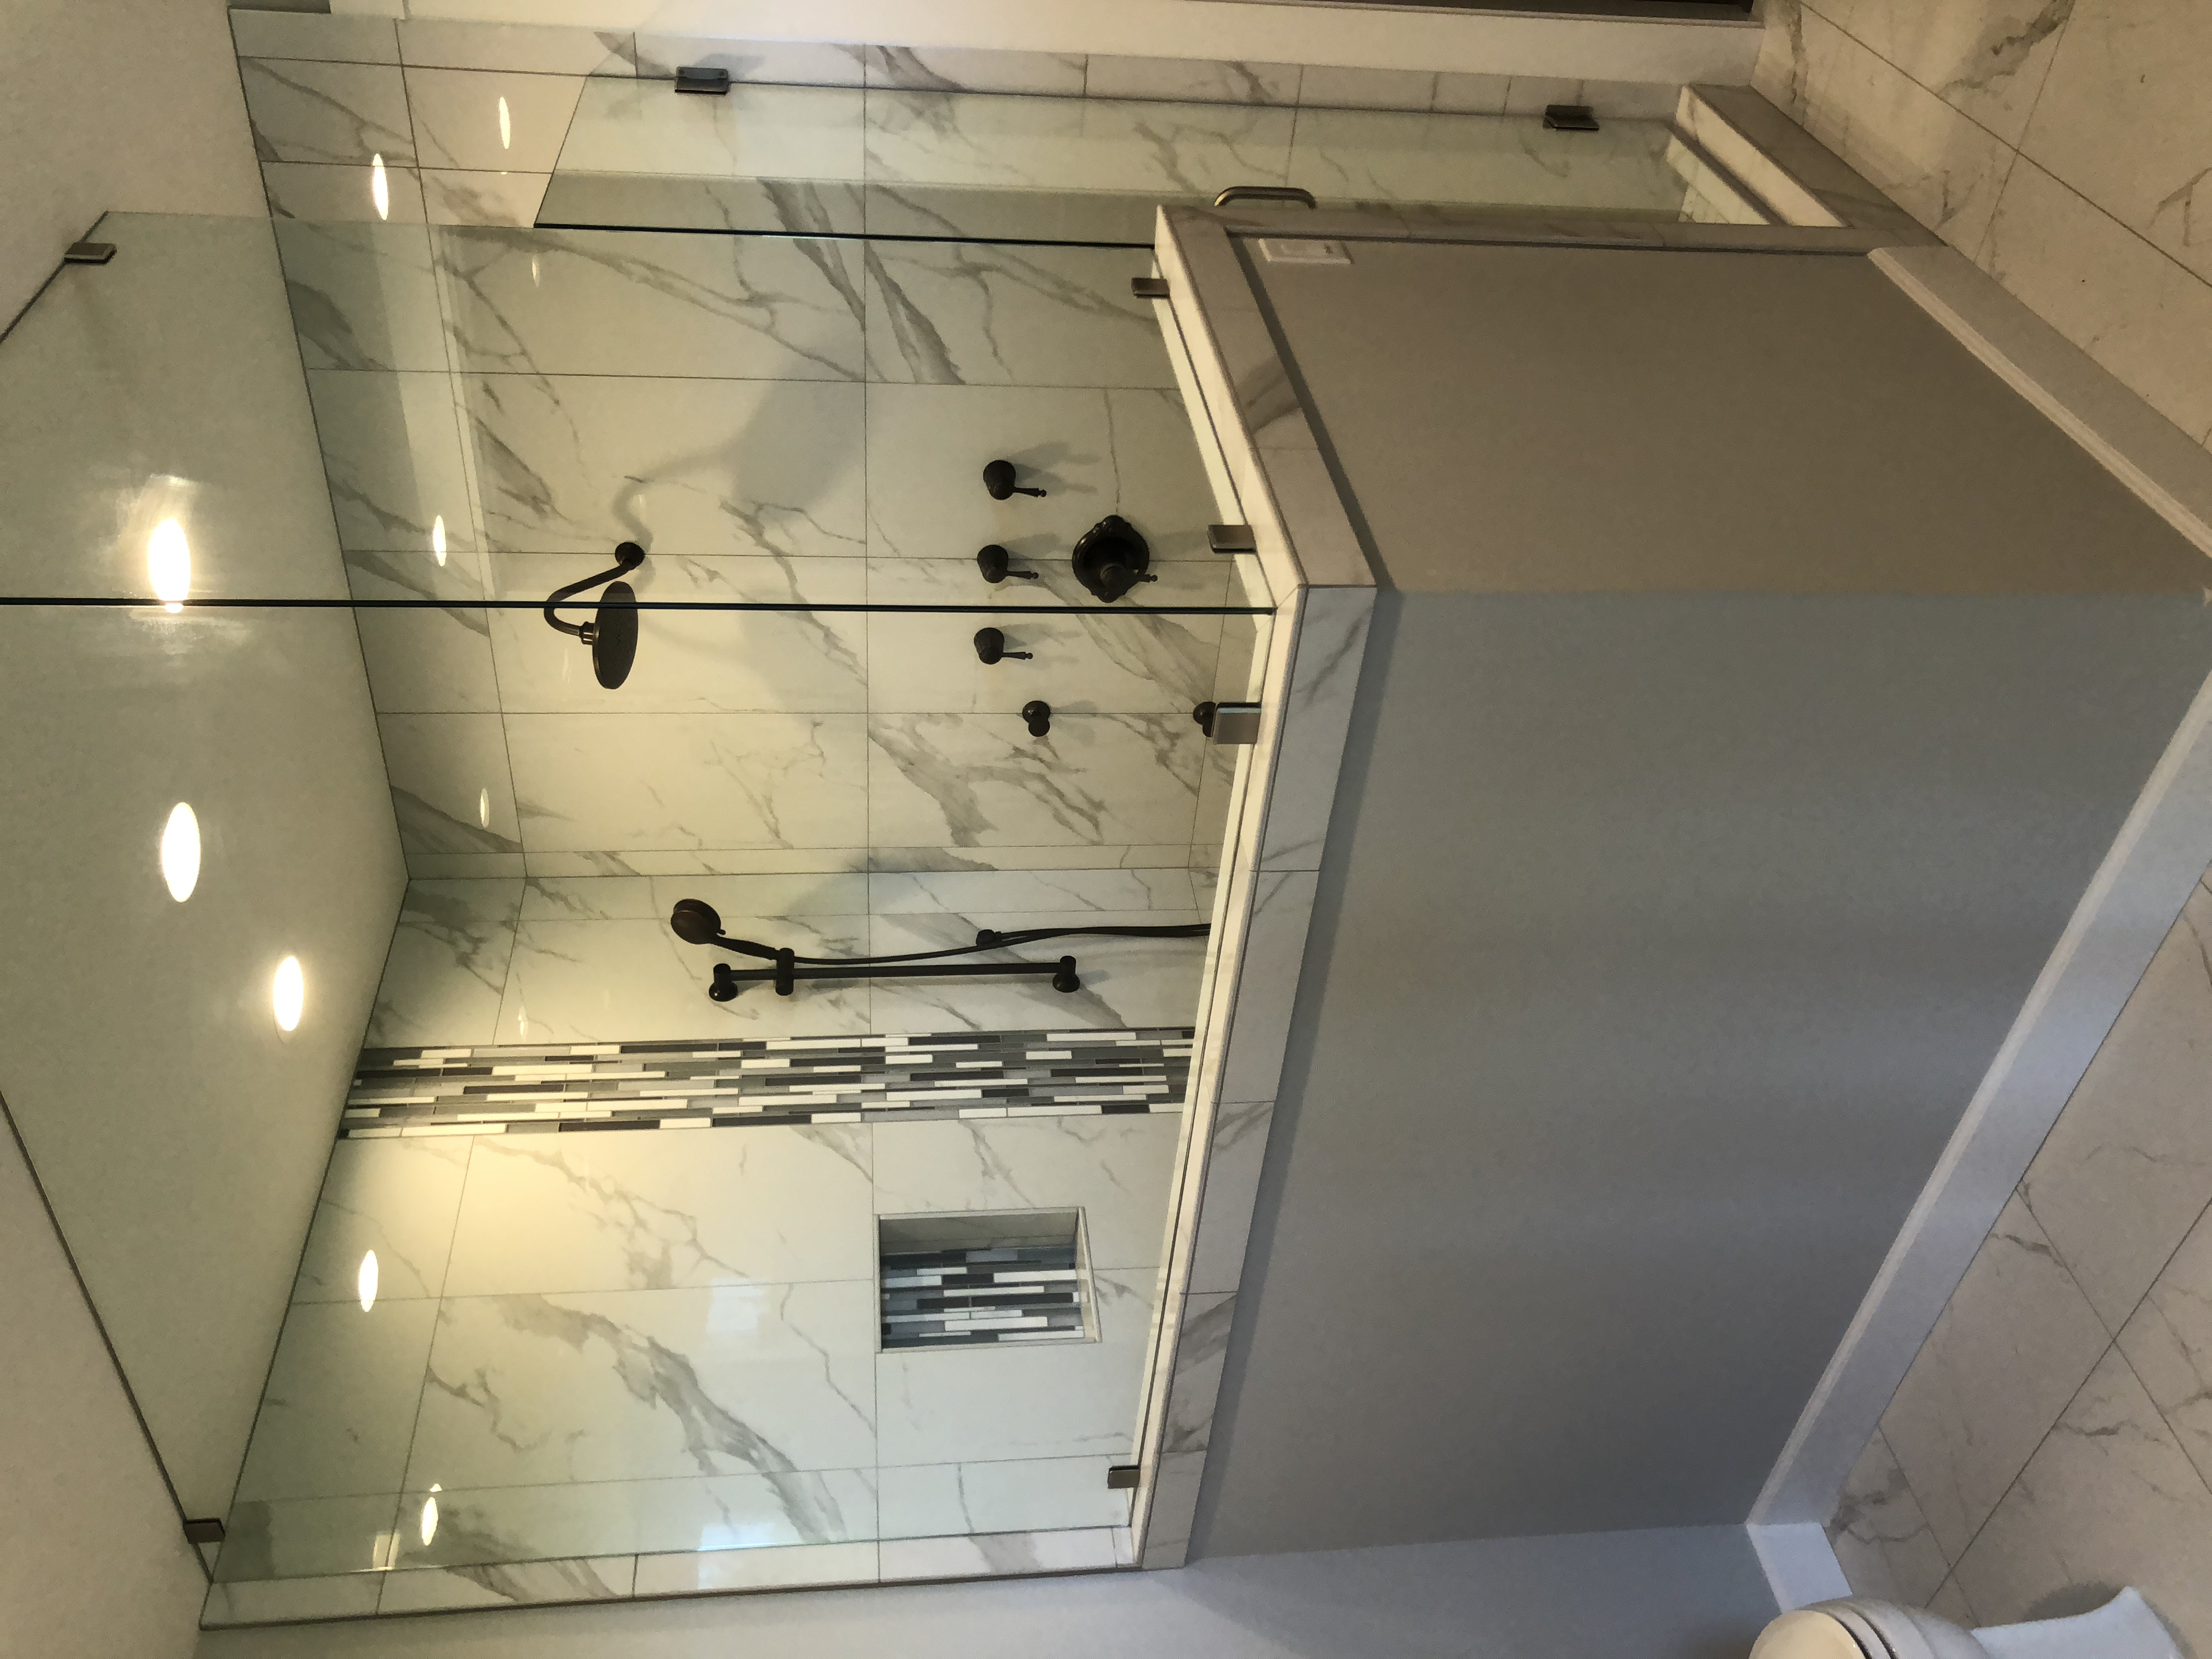 View of glass shower looking right